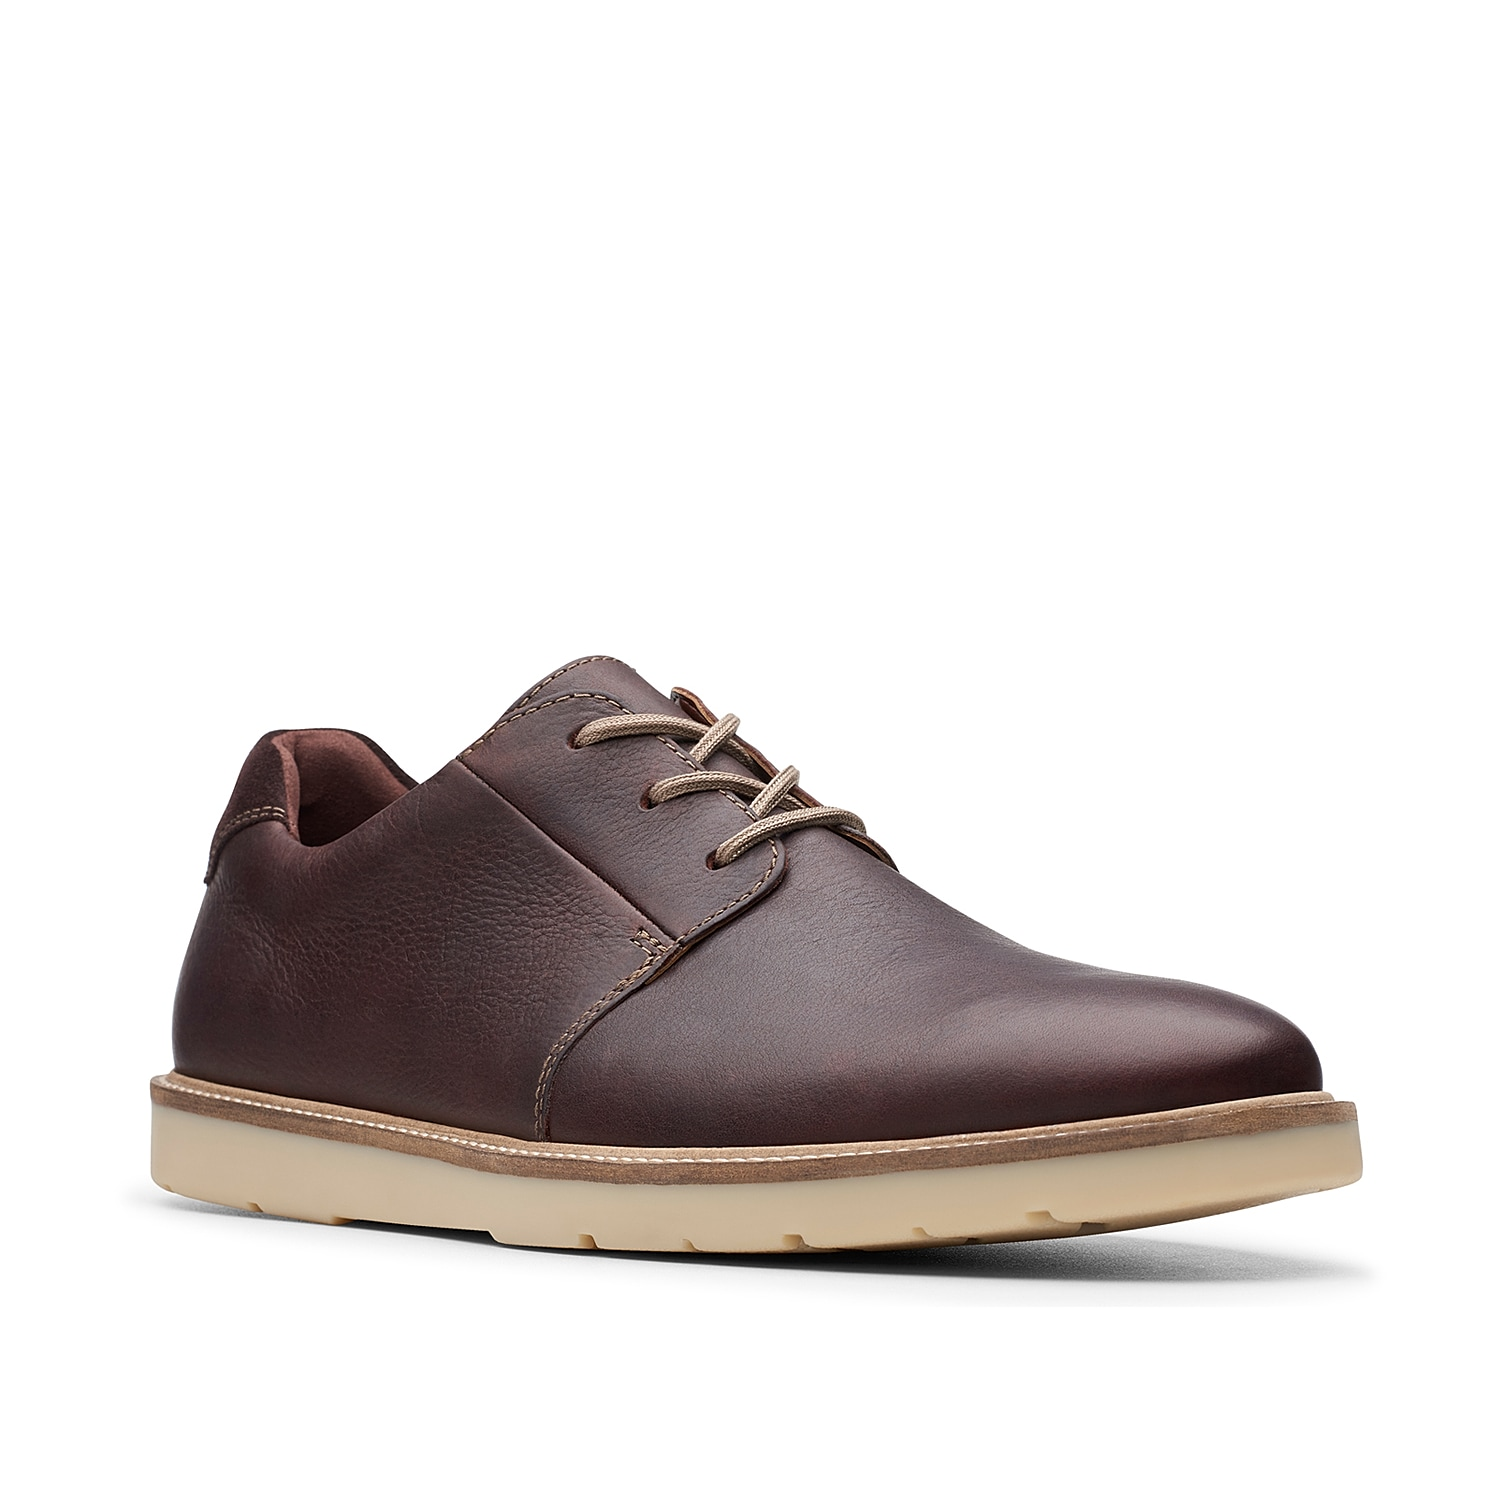 Streamline your look with the Grandin oxford from Clarks. These leather lace-ups feature full-length cushioning for daylong ease and will match with anything from a suit to a pair of dark wash jeans.